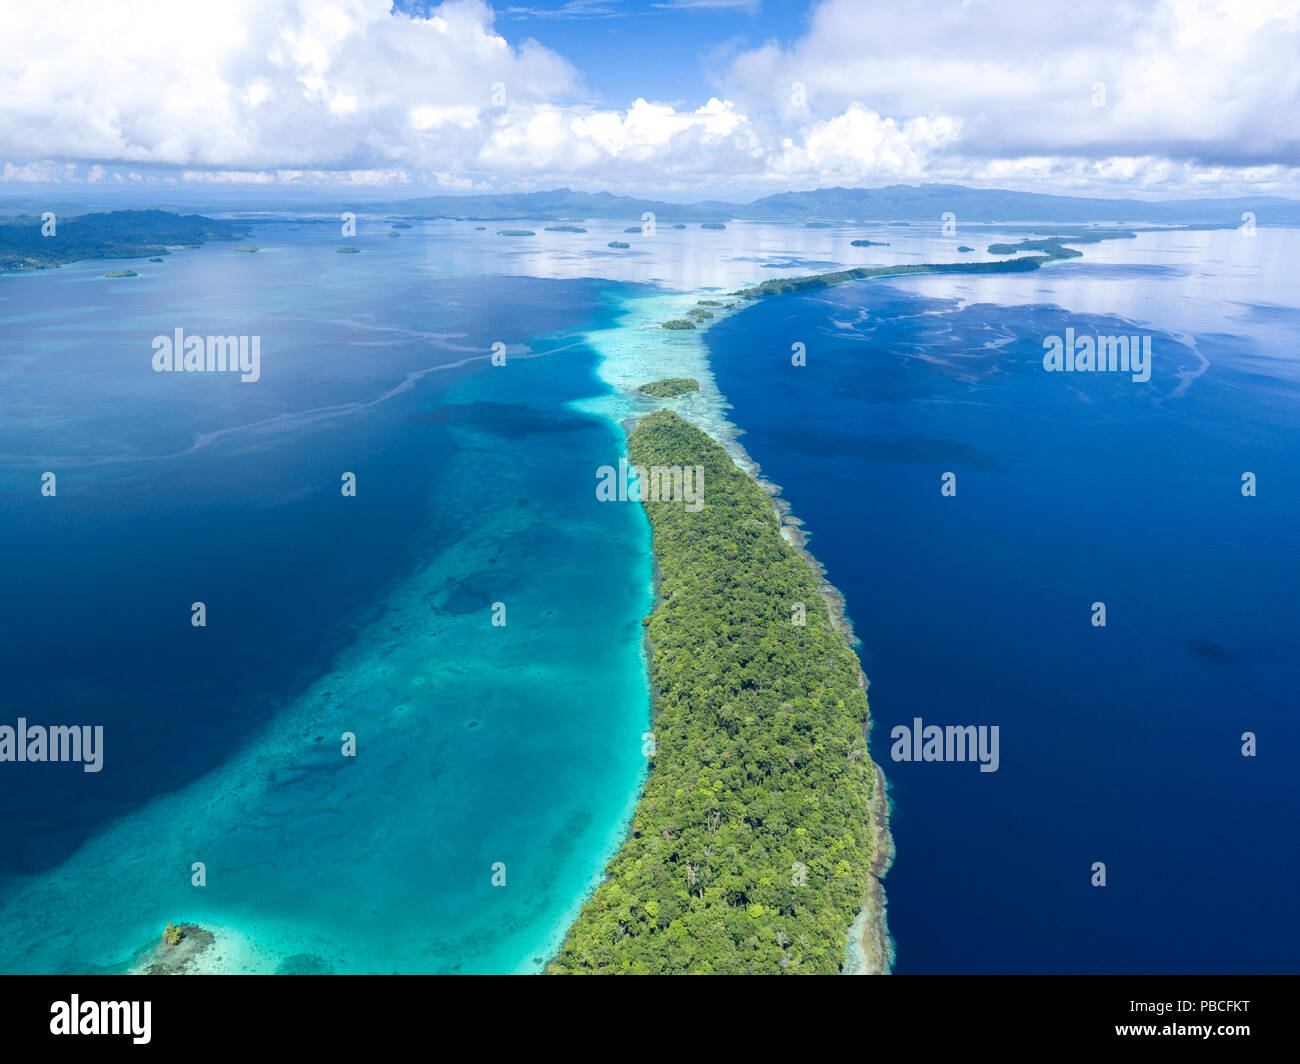 Aerial image of Marovo Lagoon, Solomon Islands - Stock Image